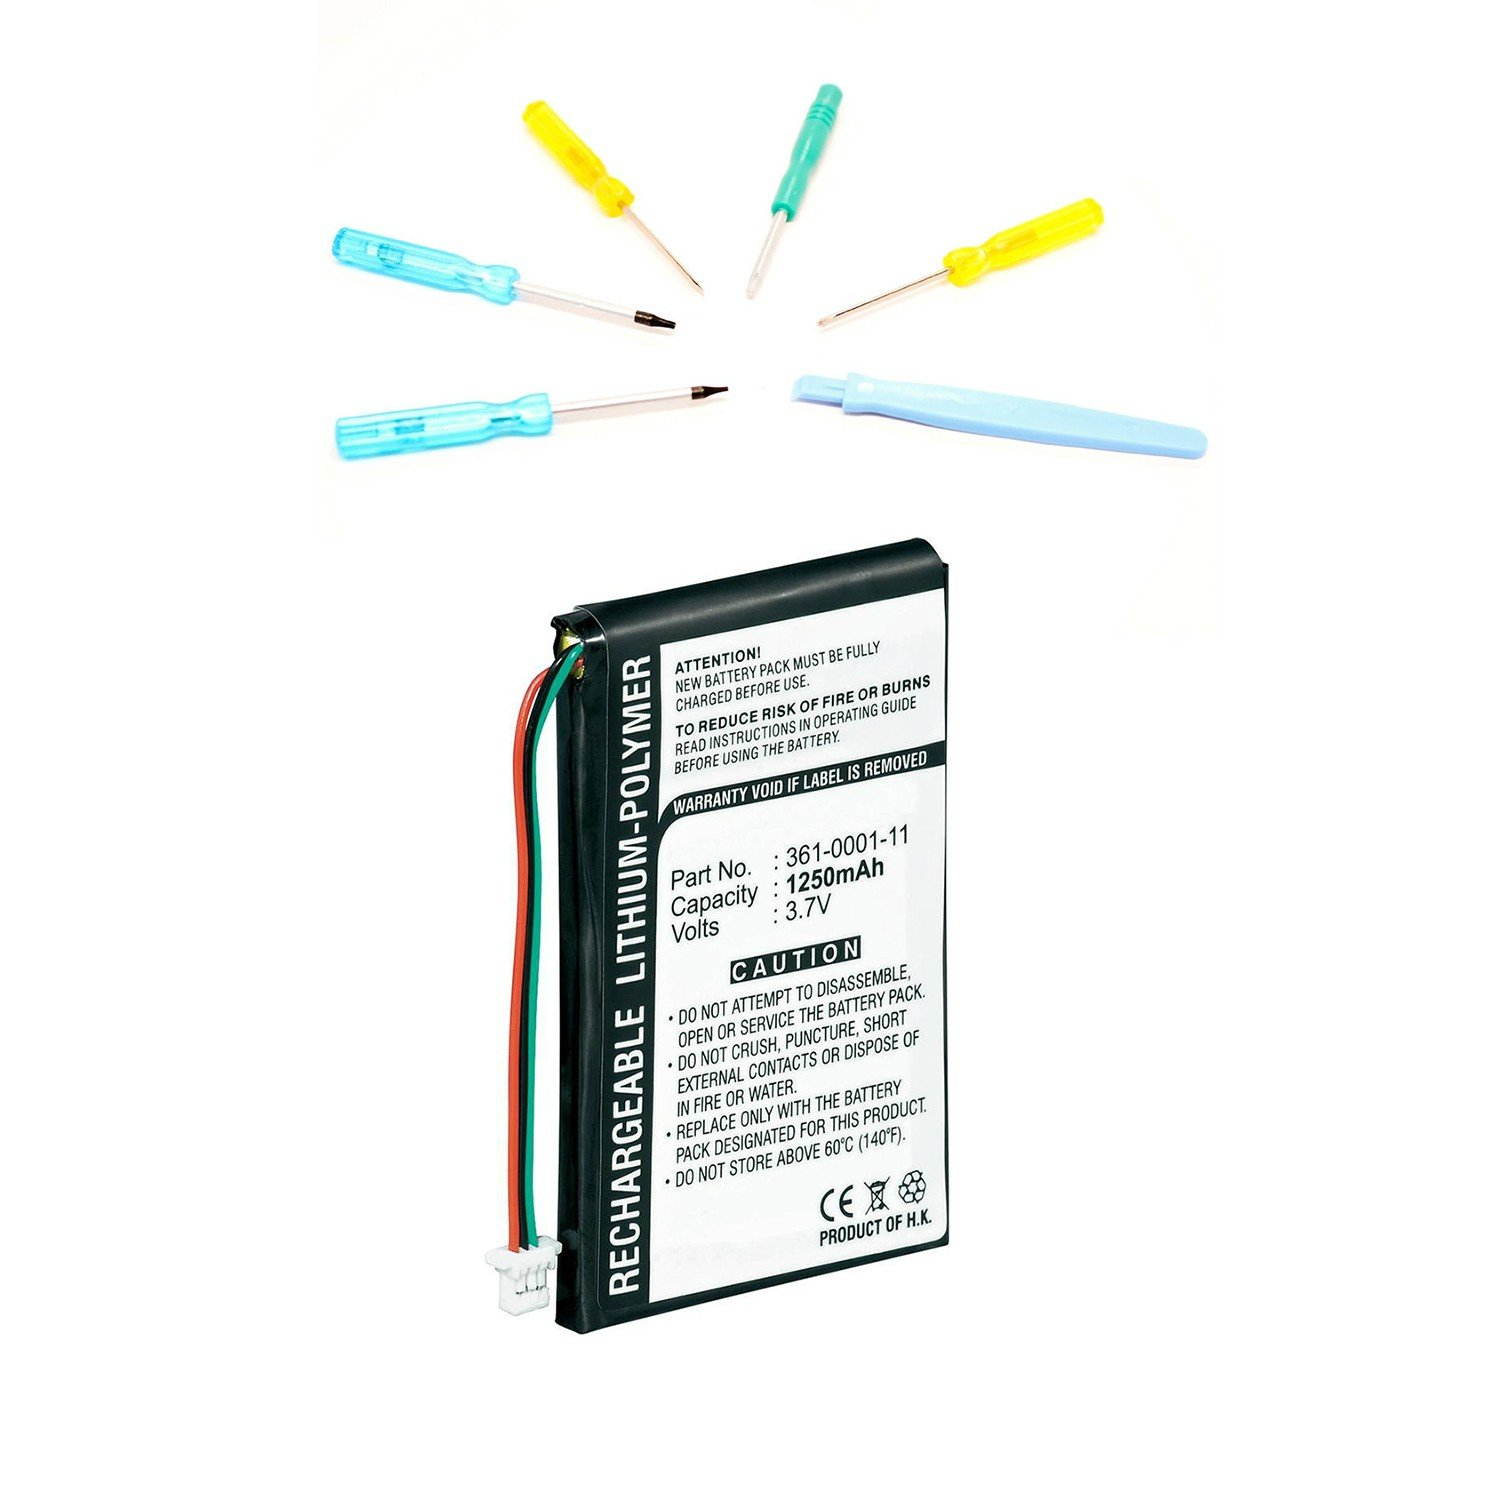 Replacement Battery with Tools for Garmin Nuvi 200, 205, 250, 252, 255, 260, 265, 270 GPS Navigators - Olympia Battery brand